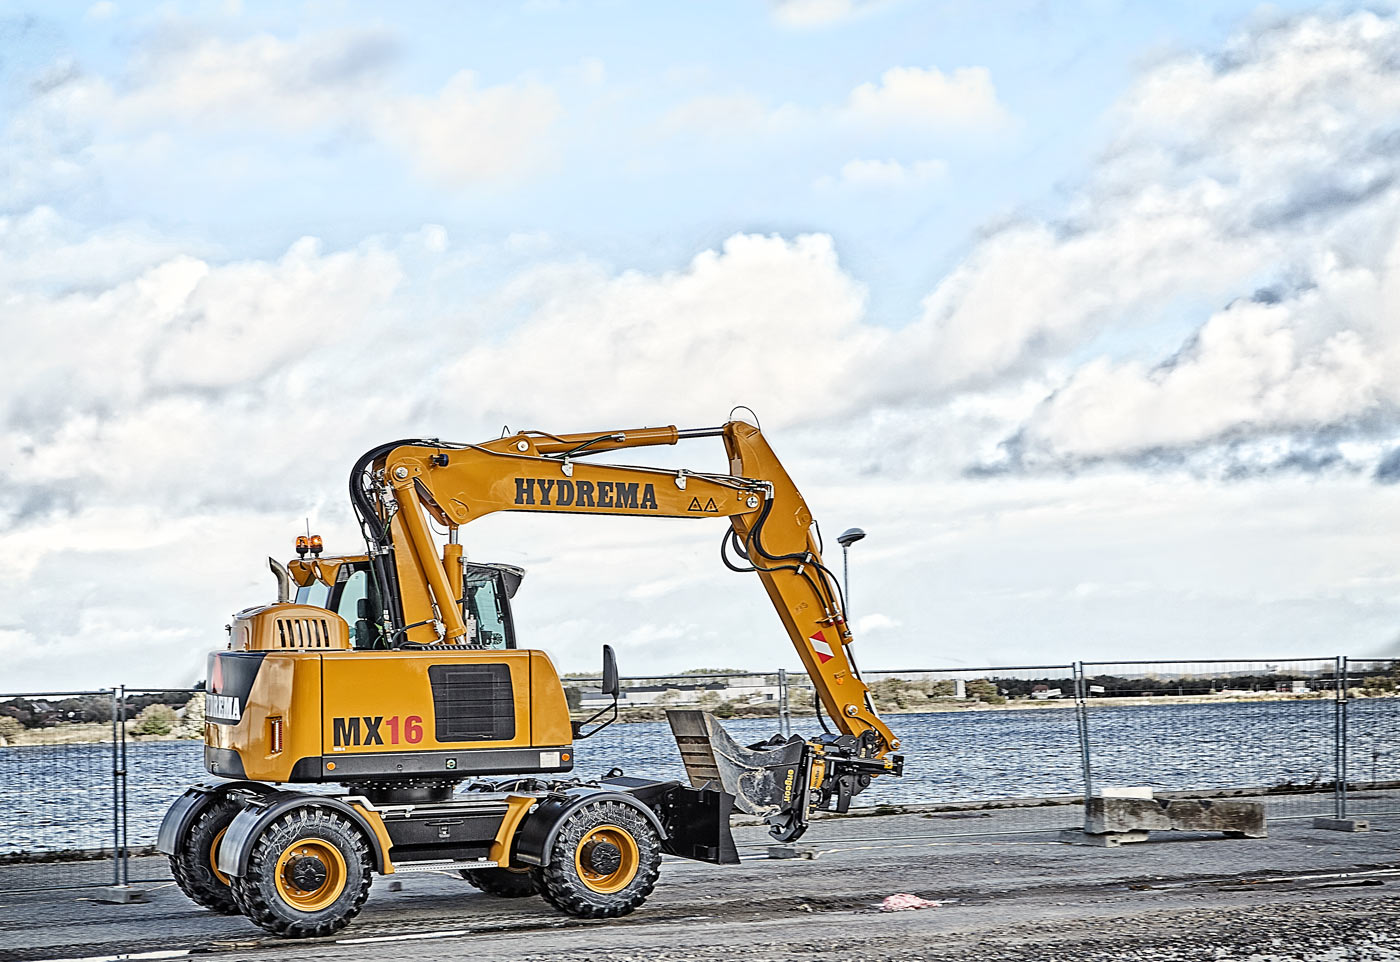 Hydrema MX16 Excavator mounted with Engcon tiltrotator driving along a harbor